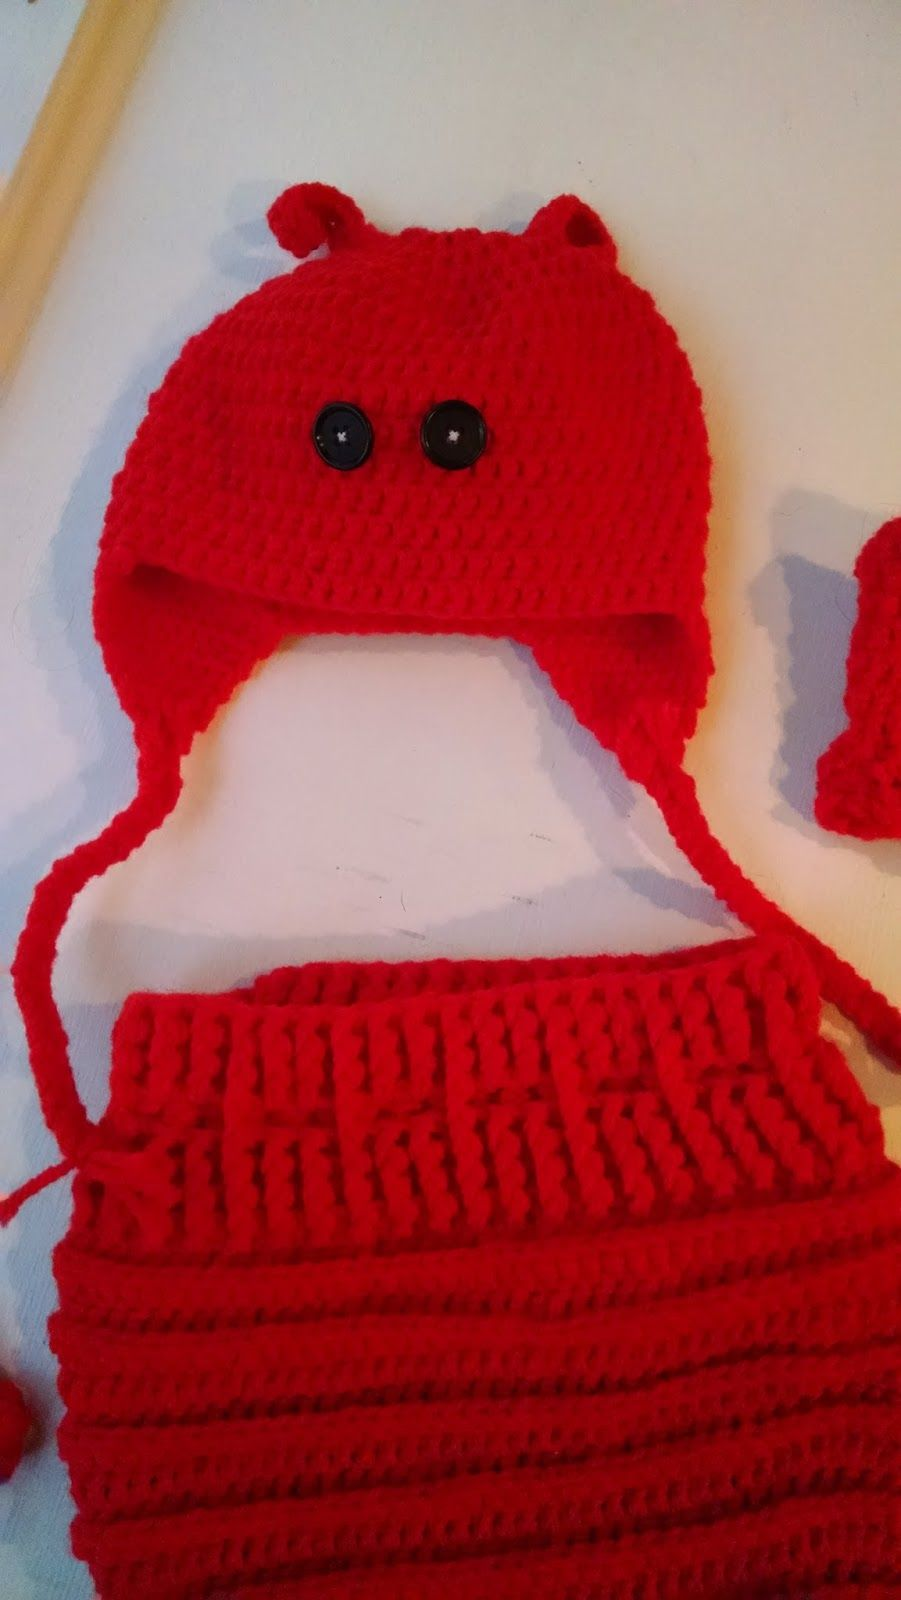 Pattern baby lobster halloween costume knit a bit crochet away pattern baby lobster halloween costume knit a bit crochet away bankloansurffo Image collections